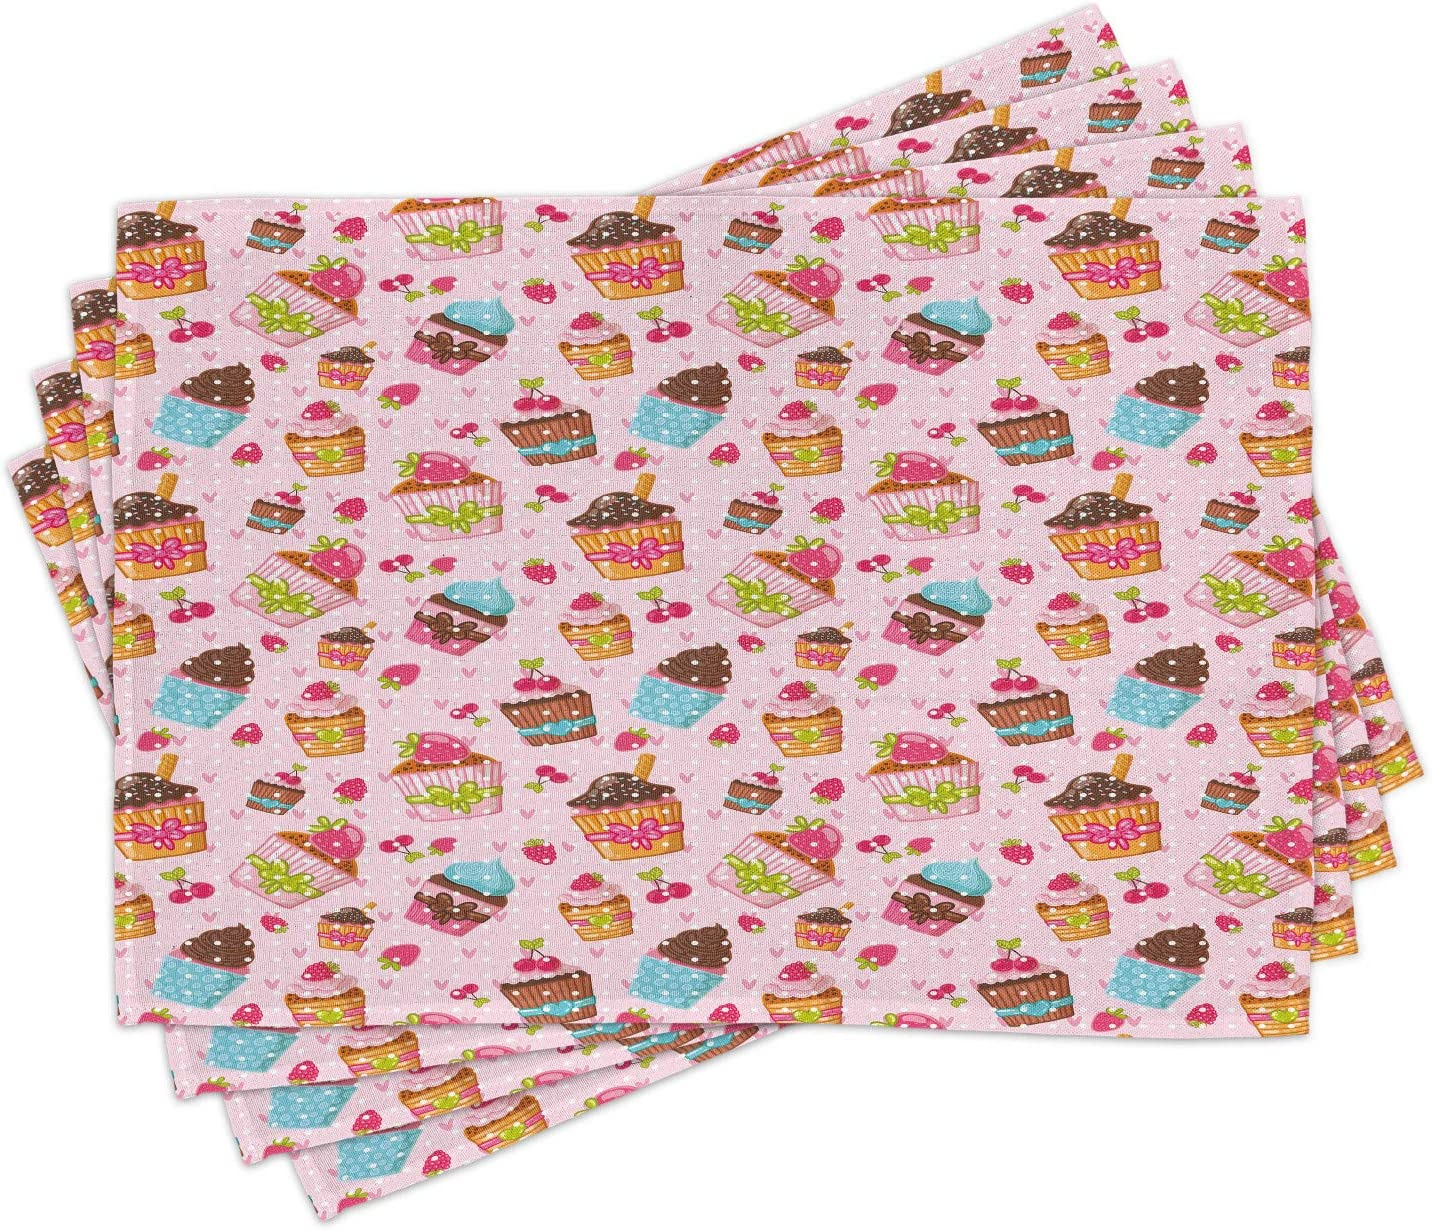 Ambesonne Pink Place Mats Set of 4, Kitchen Cupcakes Muffins Strawberries and Cherries Food Eating Sweets Print, Washable Fabric Placemats for Dining Room Kitchen Table Decor, Pink Brown